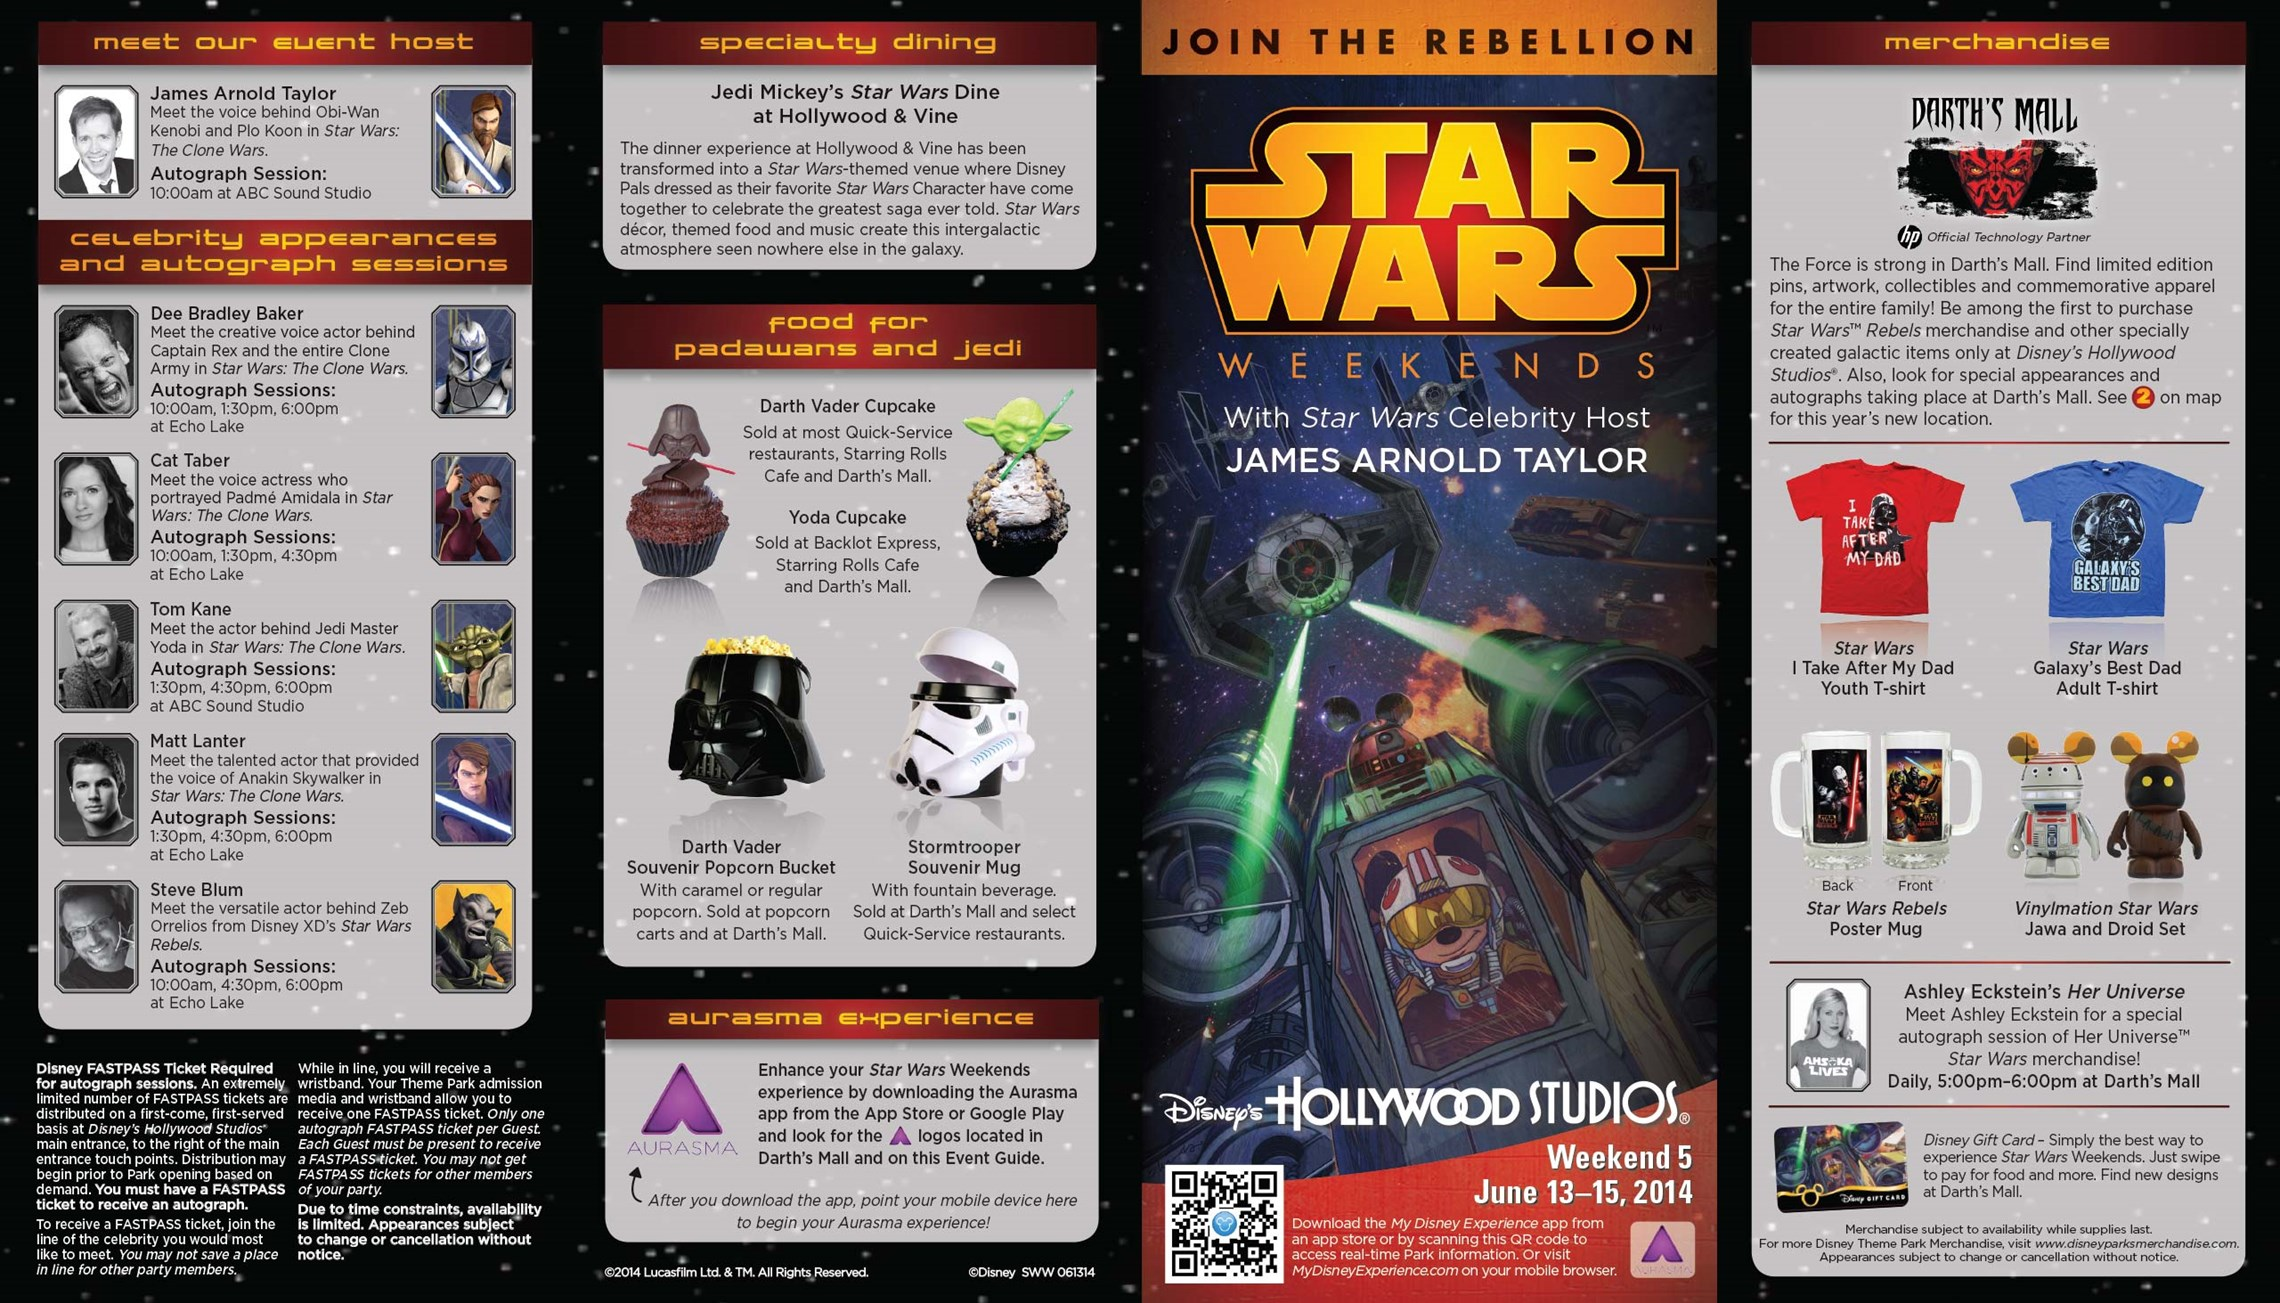 2014 Star Wars Weekends June 13 - 15 Weekend 5 guide map